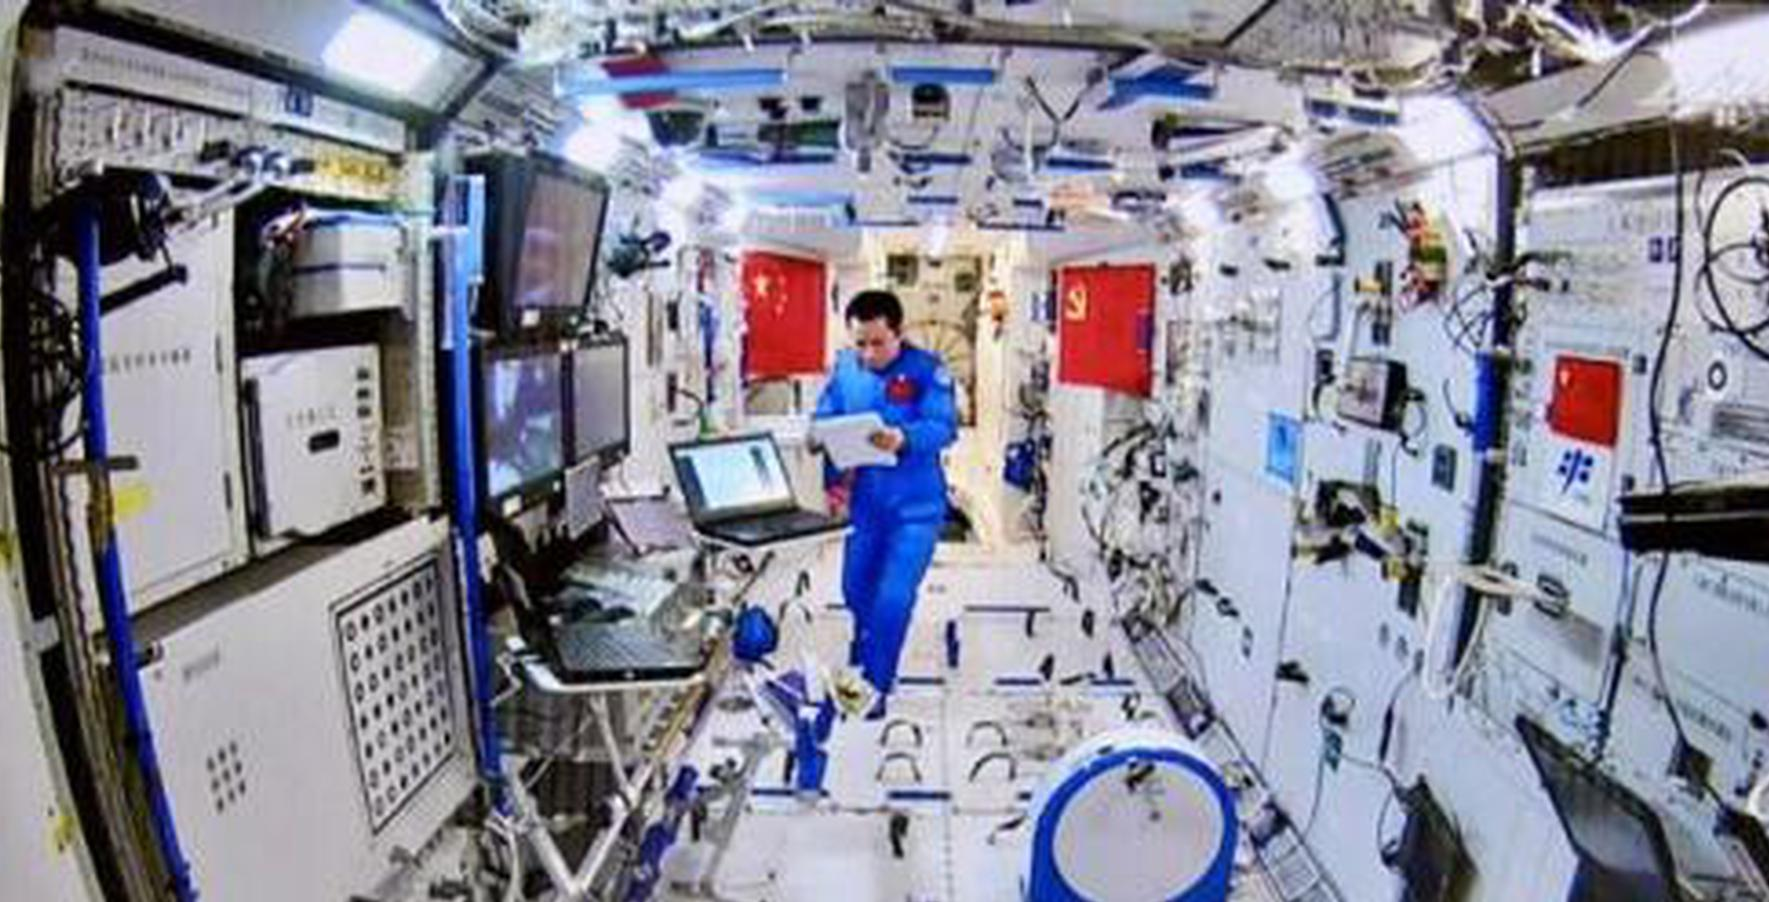 Chinese astronauts answer HK students questions from space